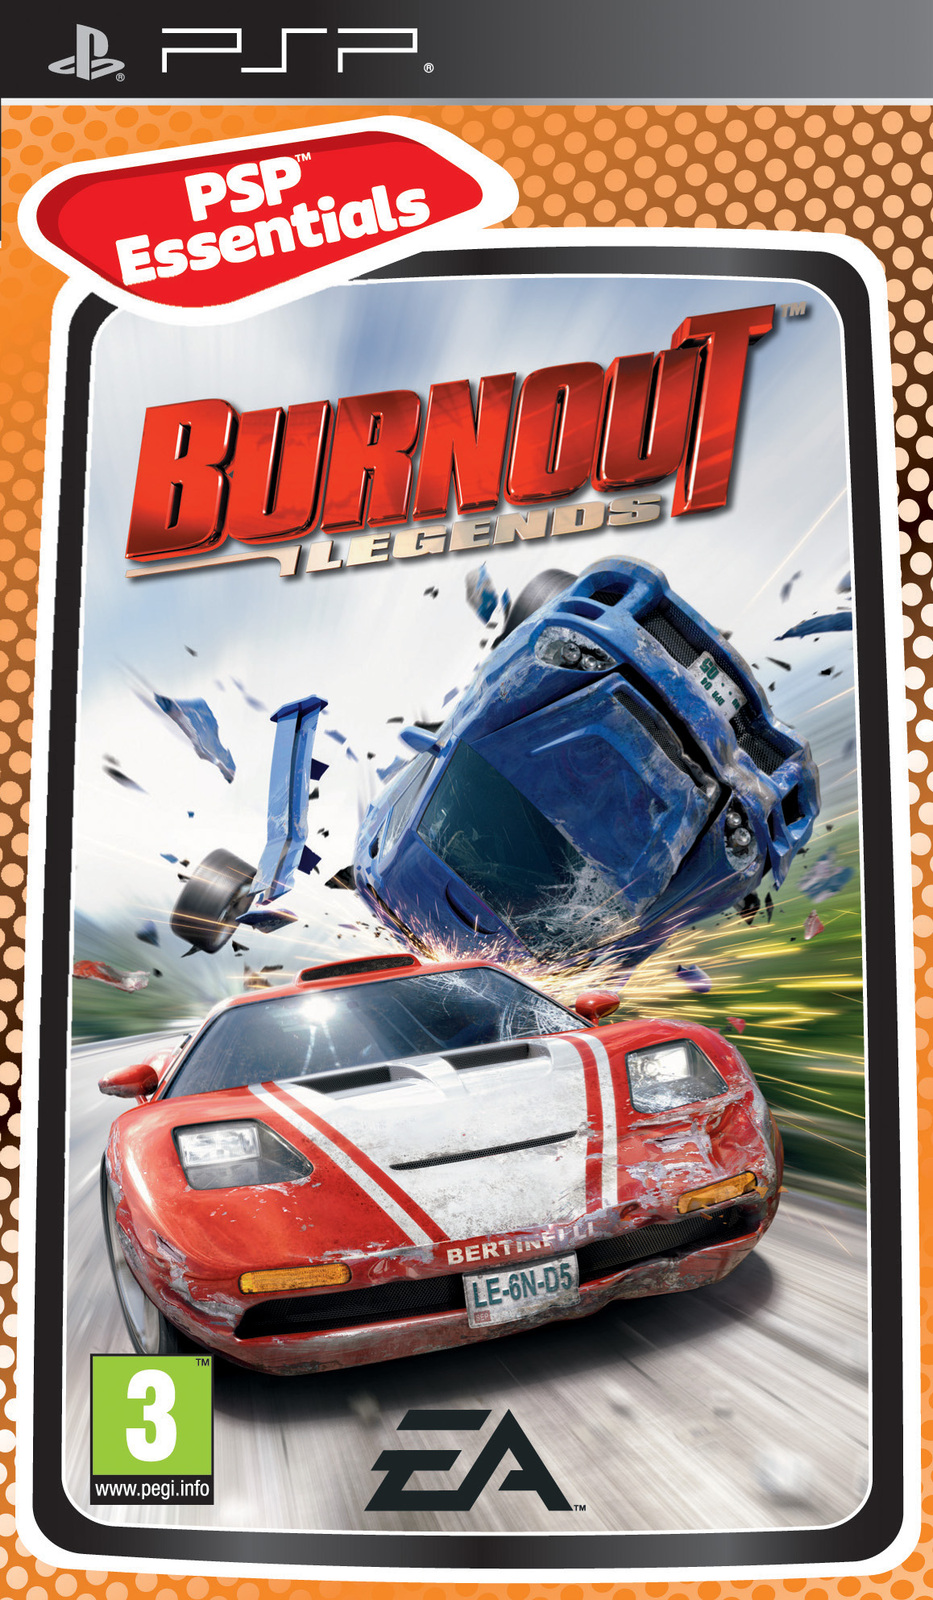 Burnout: Legends for PSP image